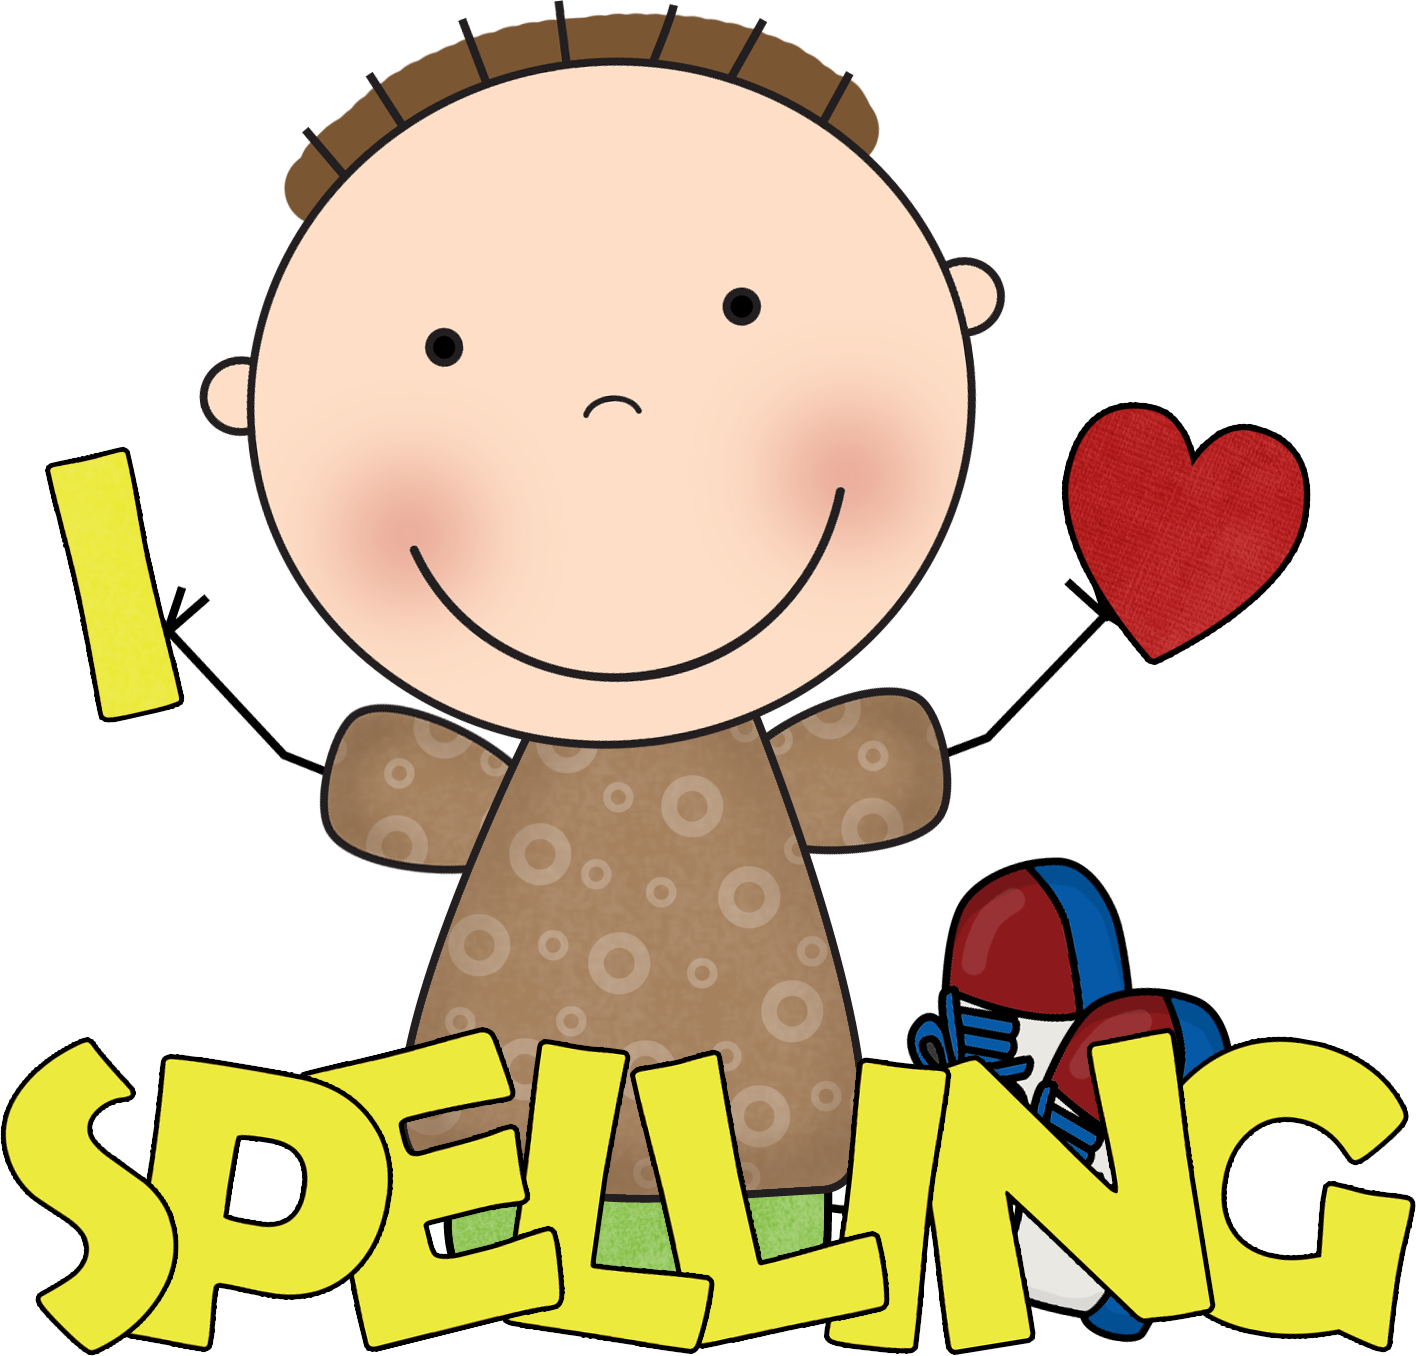 Worksheet Child Spelling spelling clipart kid use these free images for your websites art projects reports and